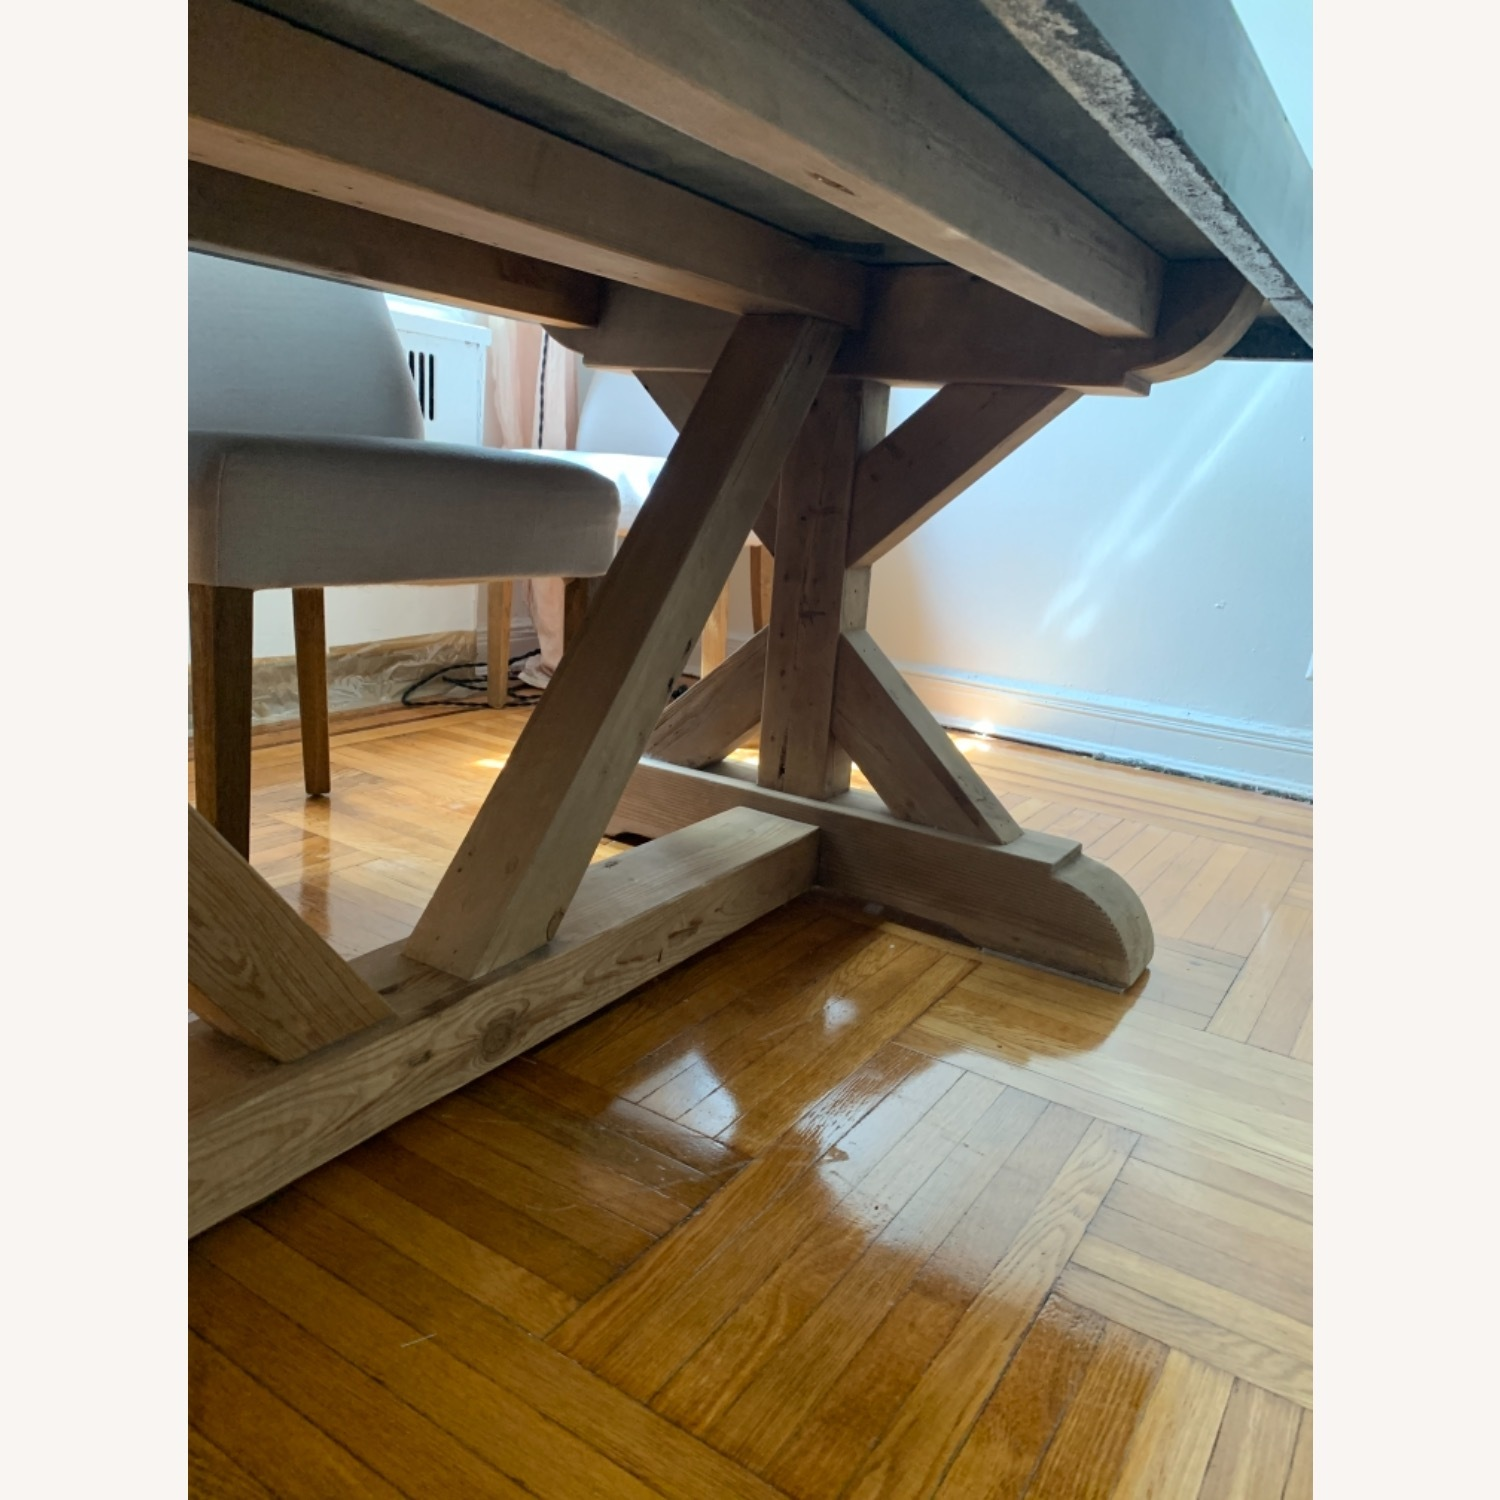 Restoration Hardware Salvaged Wood and Concrete Dining Table - image-29